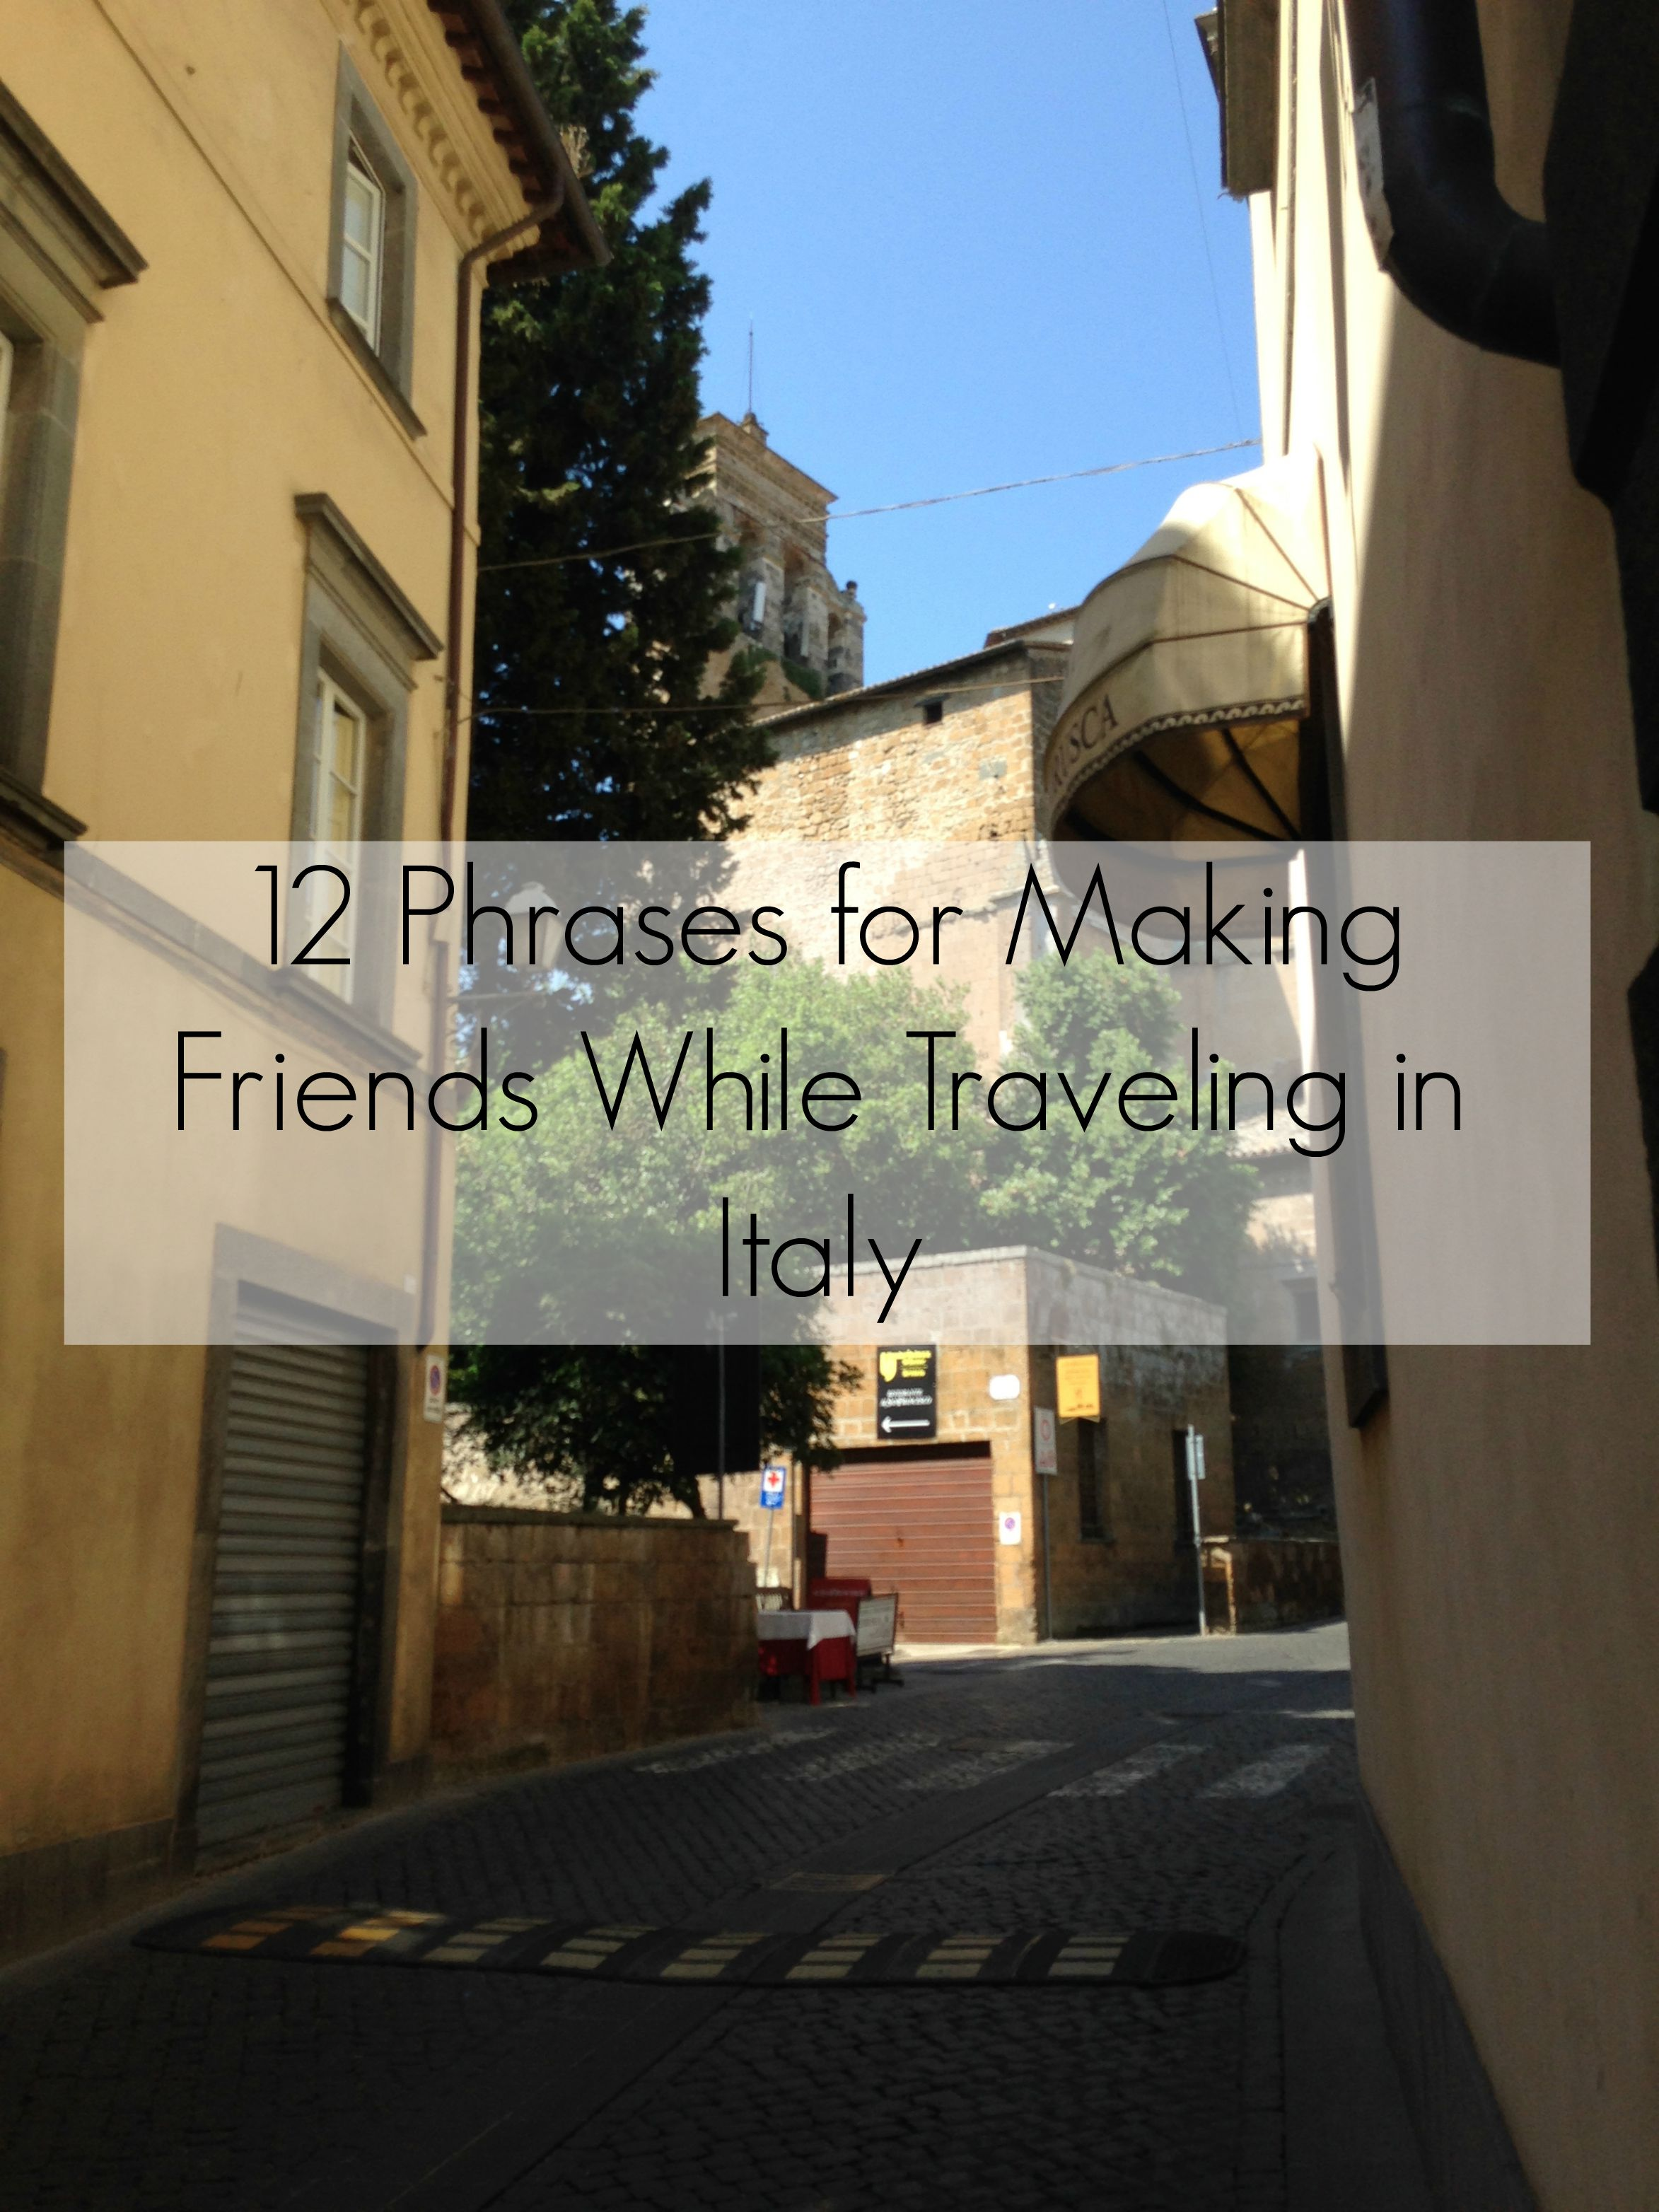 12 Phrases for Making Friends While Traveling in Italy